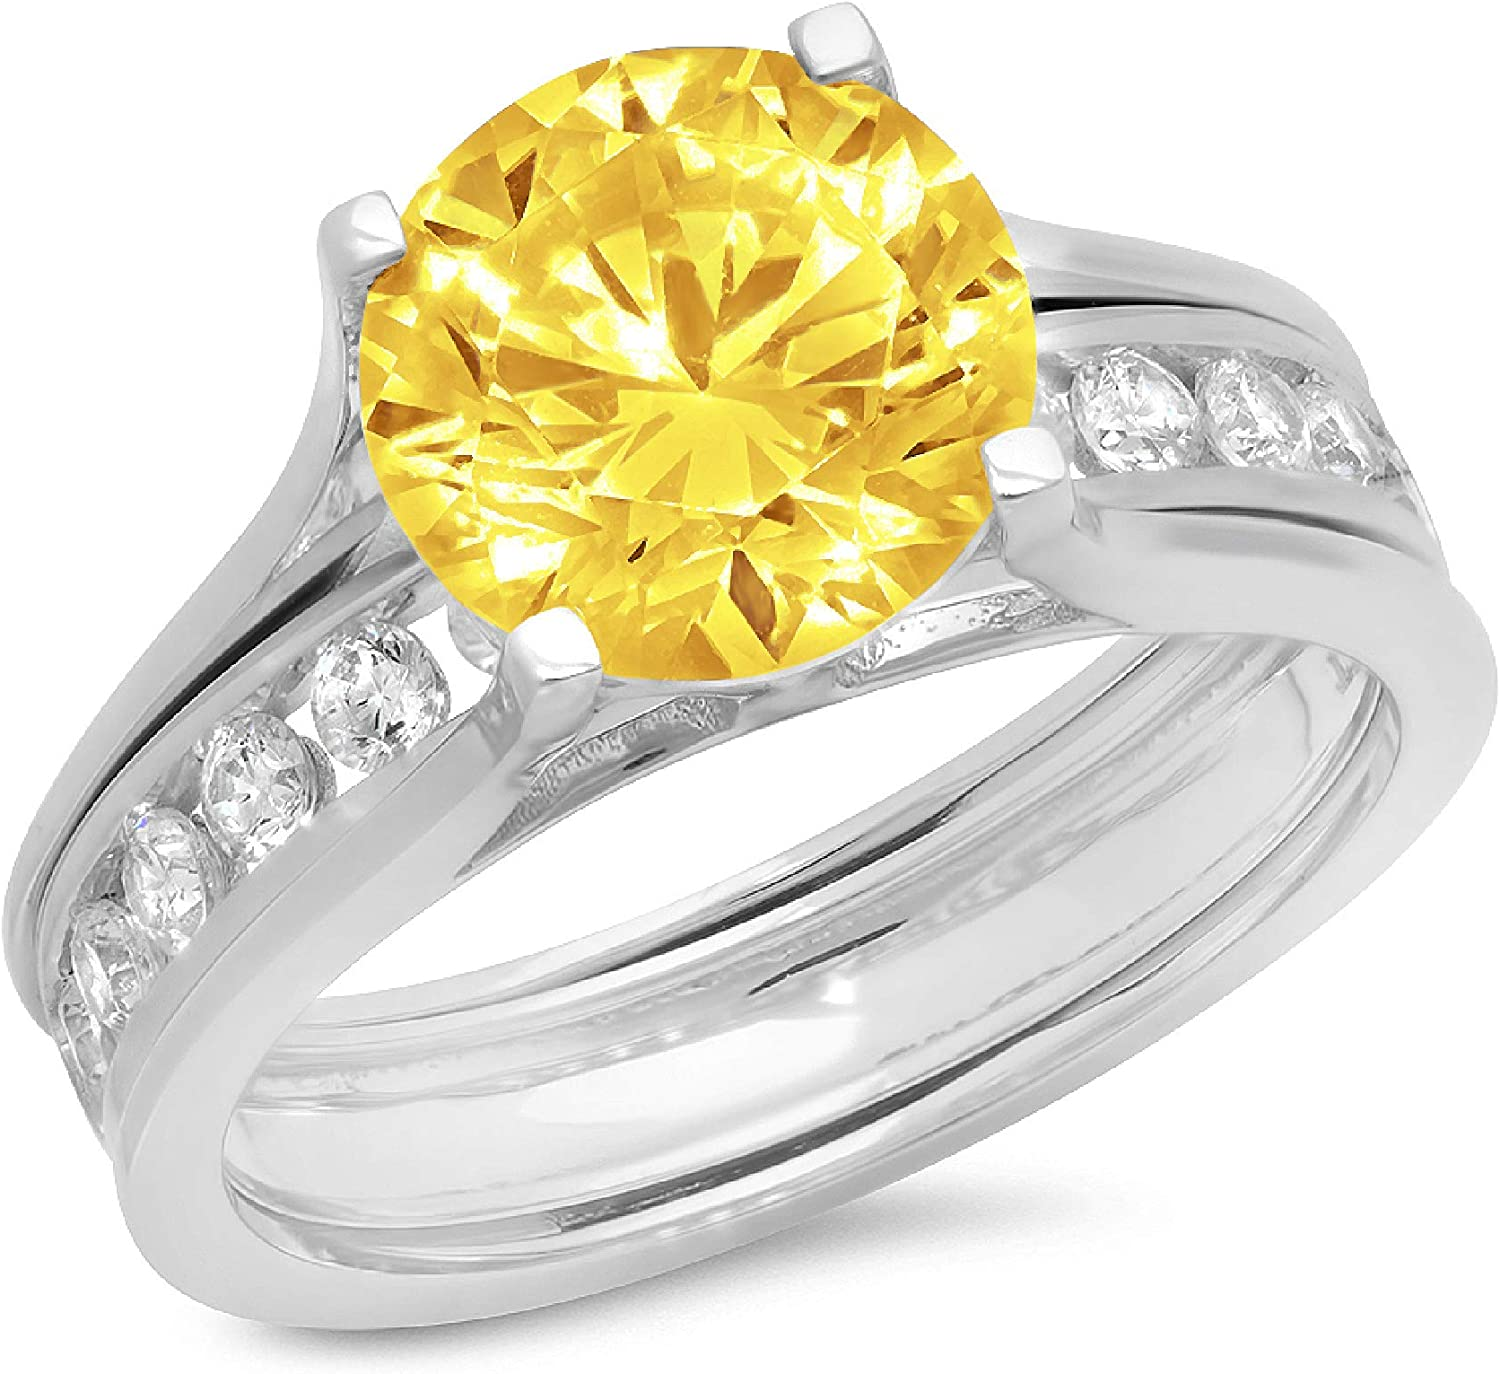 2.83ct Round Cut Pave Solitaire with Accent VVS1 Ideal Canary Yellow Simulated Diamond CZ Engagement Promise Designer Anniversary Wedding Bridal ring band set Sliding 14k White Gold